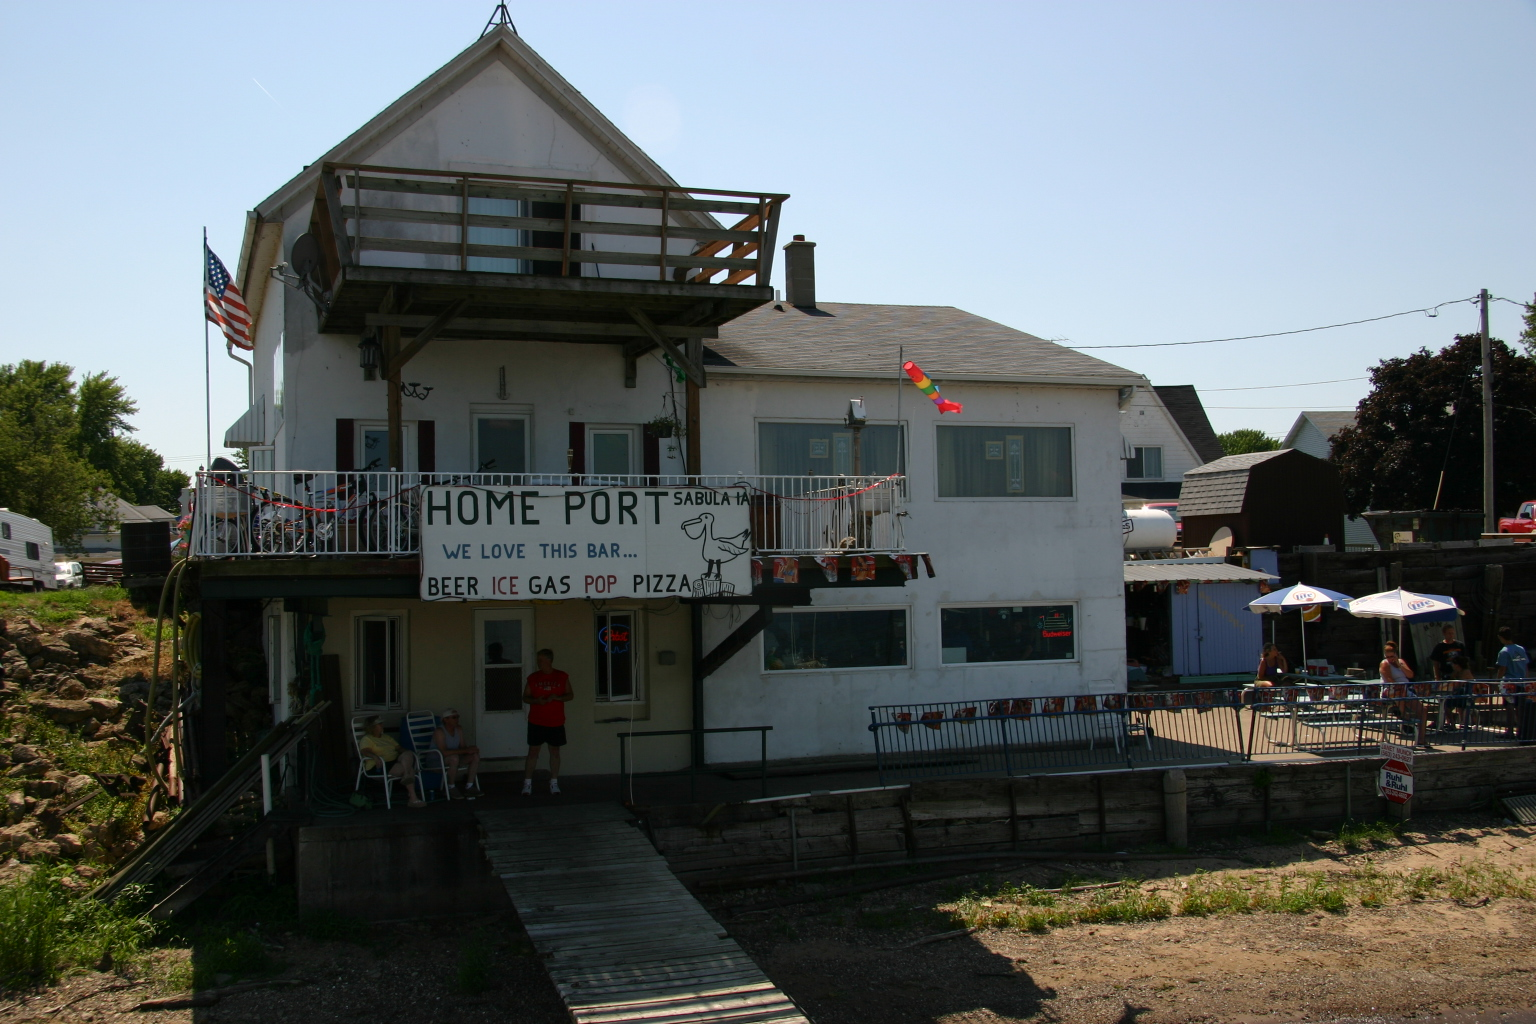 Home Port, Sabula, Iowa